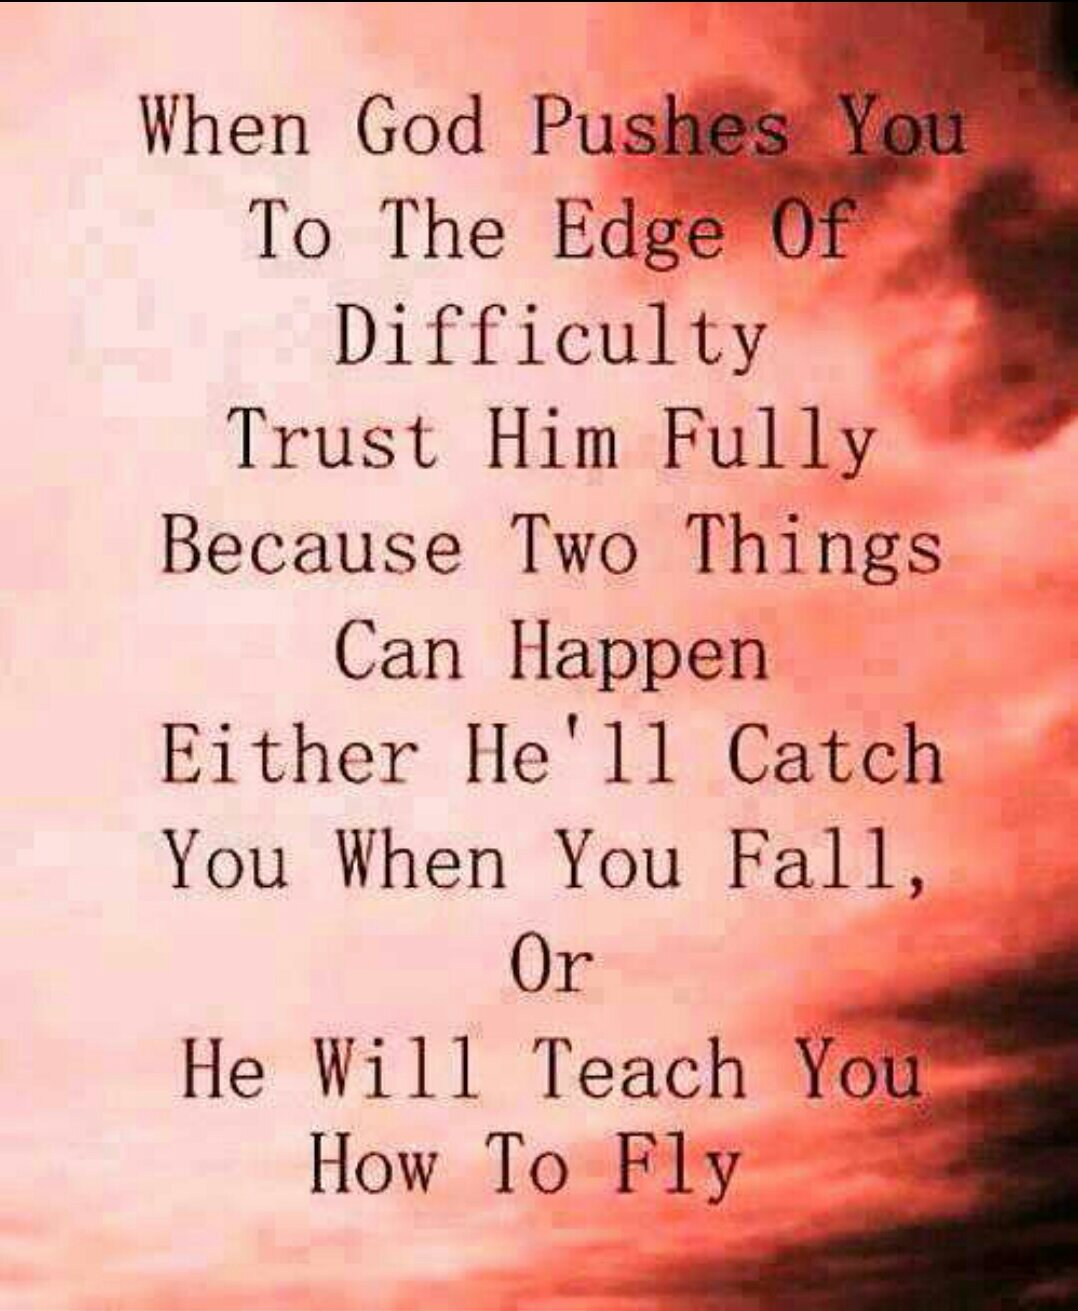 God's Guidance Quotes Quotes About God 605 Quotes